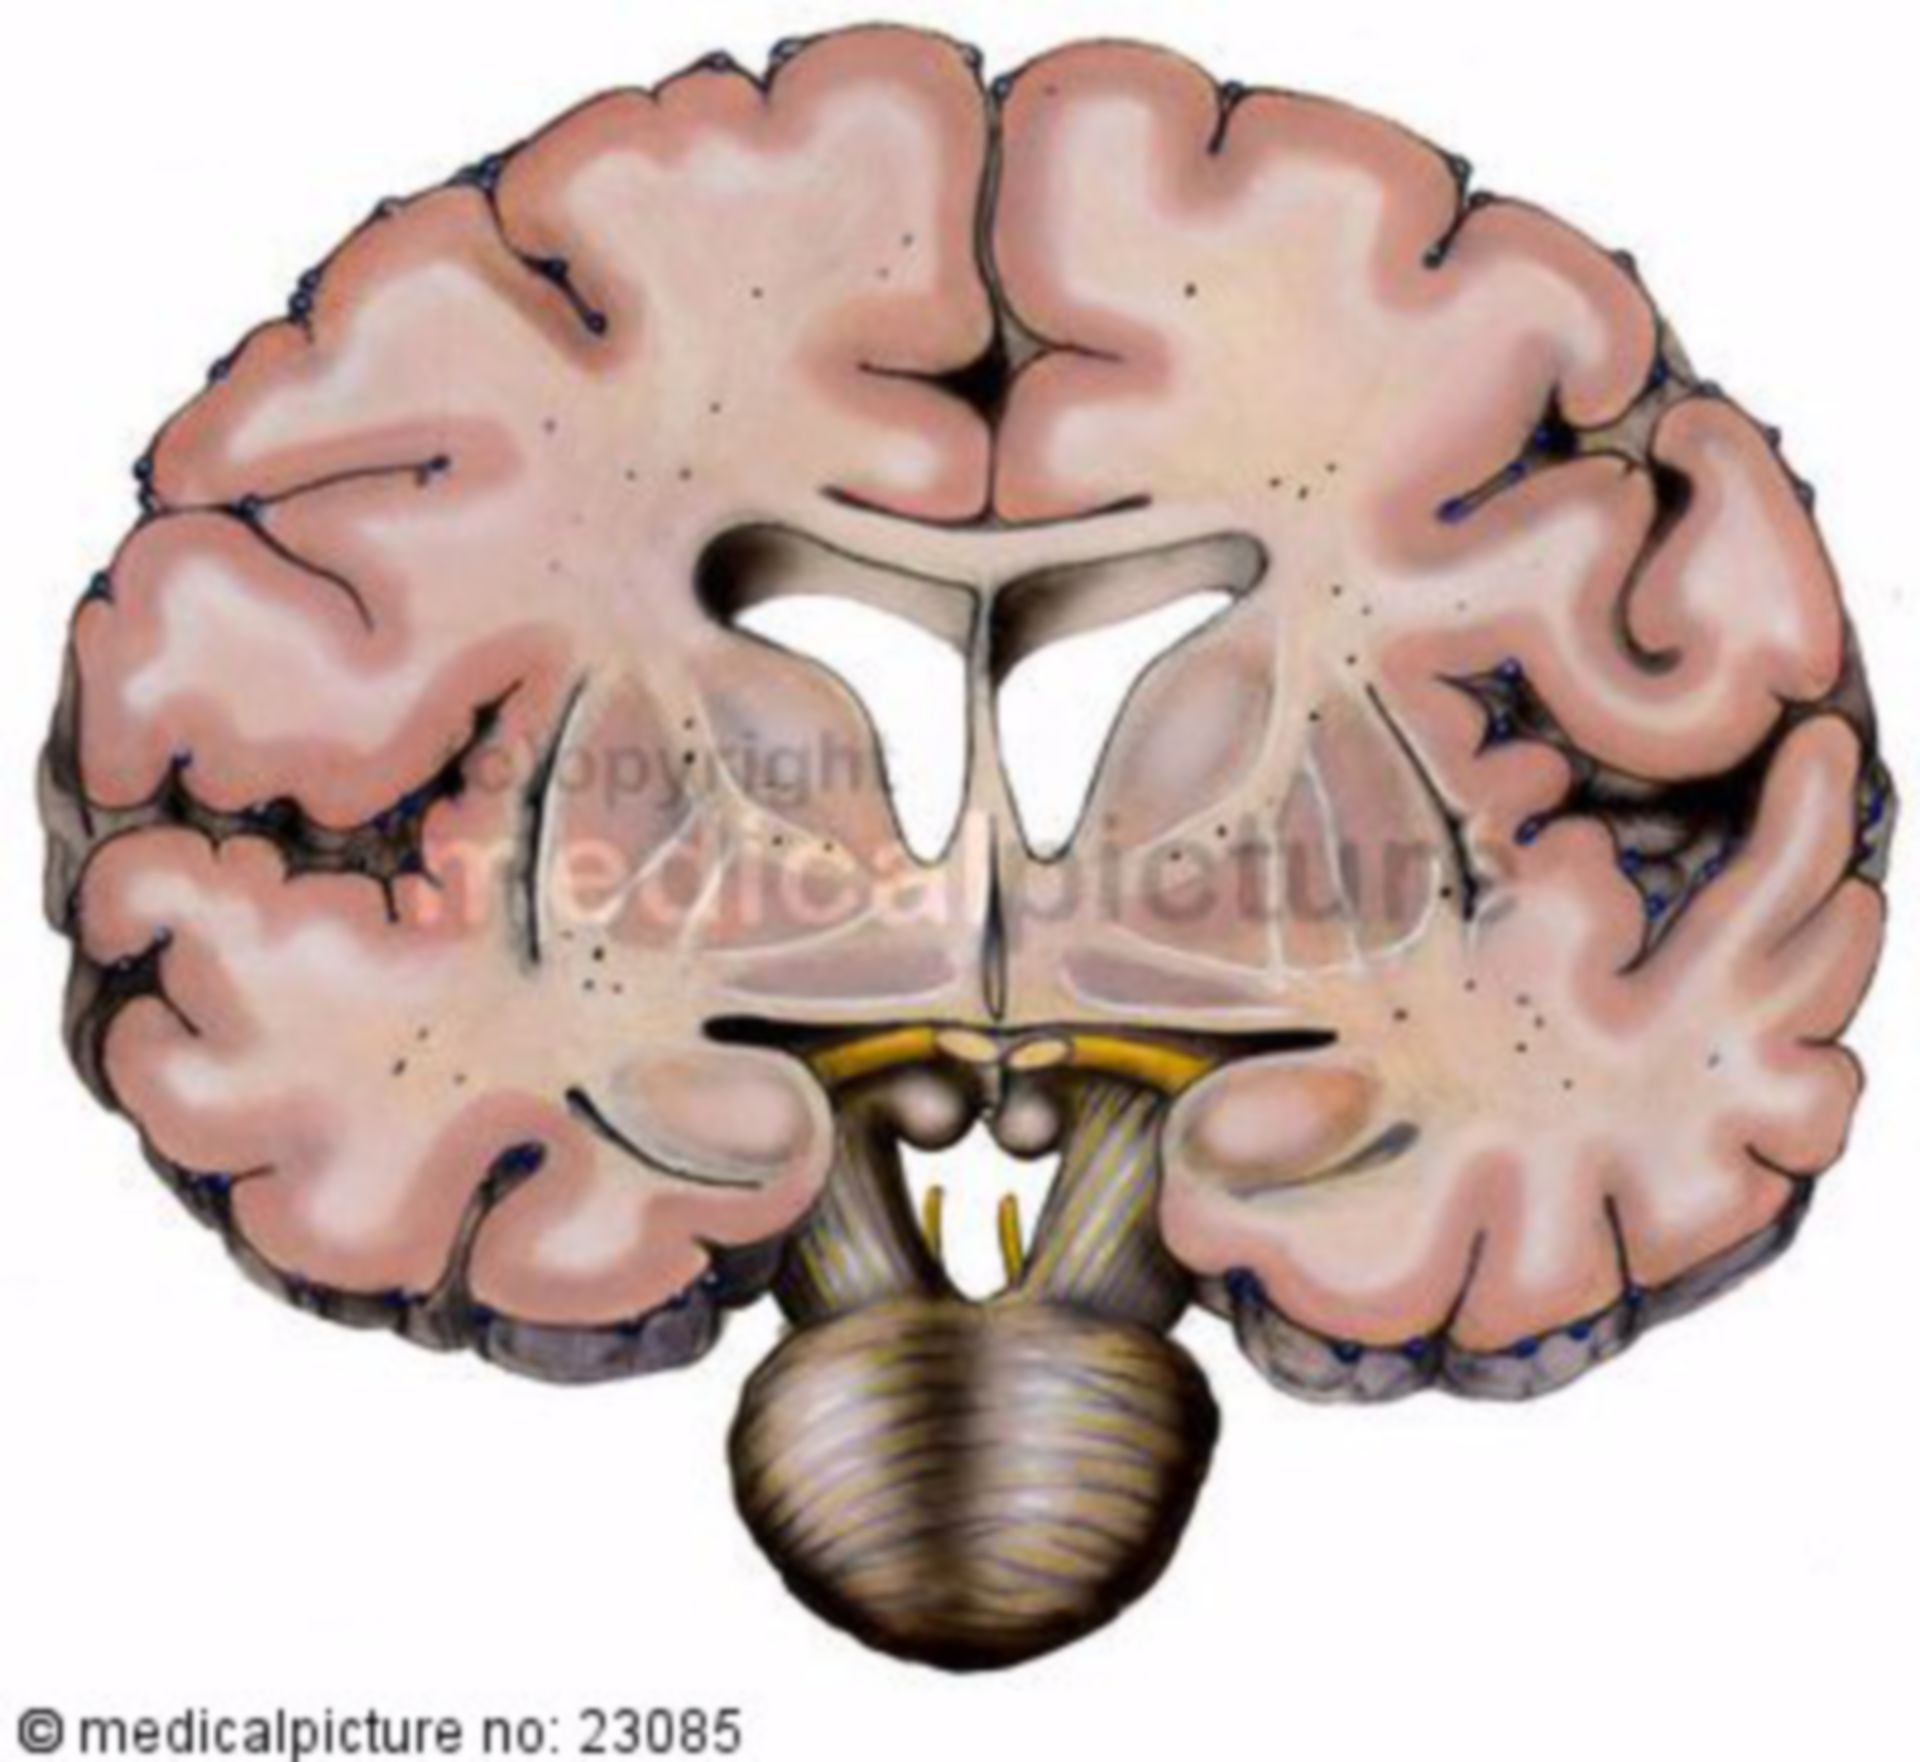 Frontal Section of a Brain